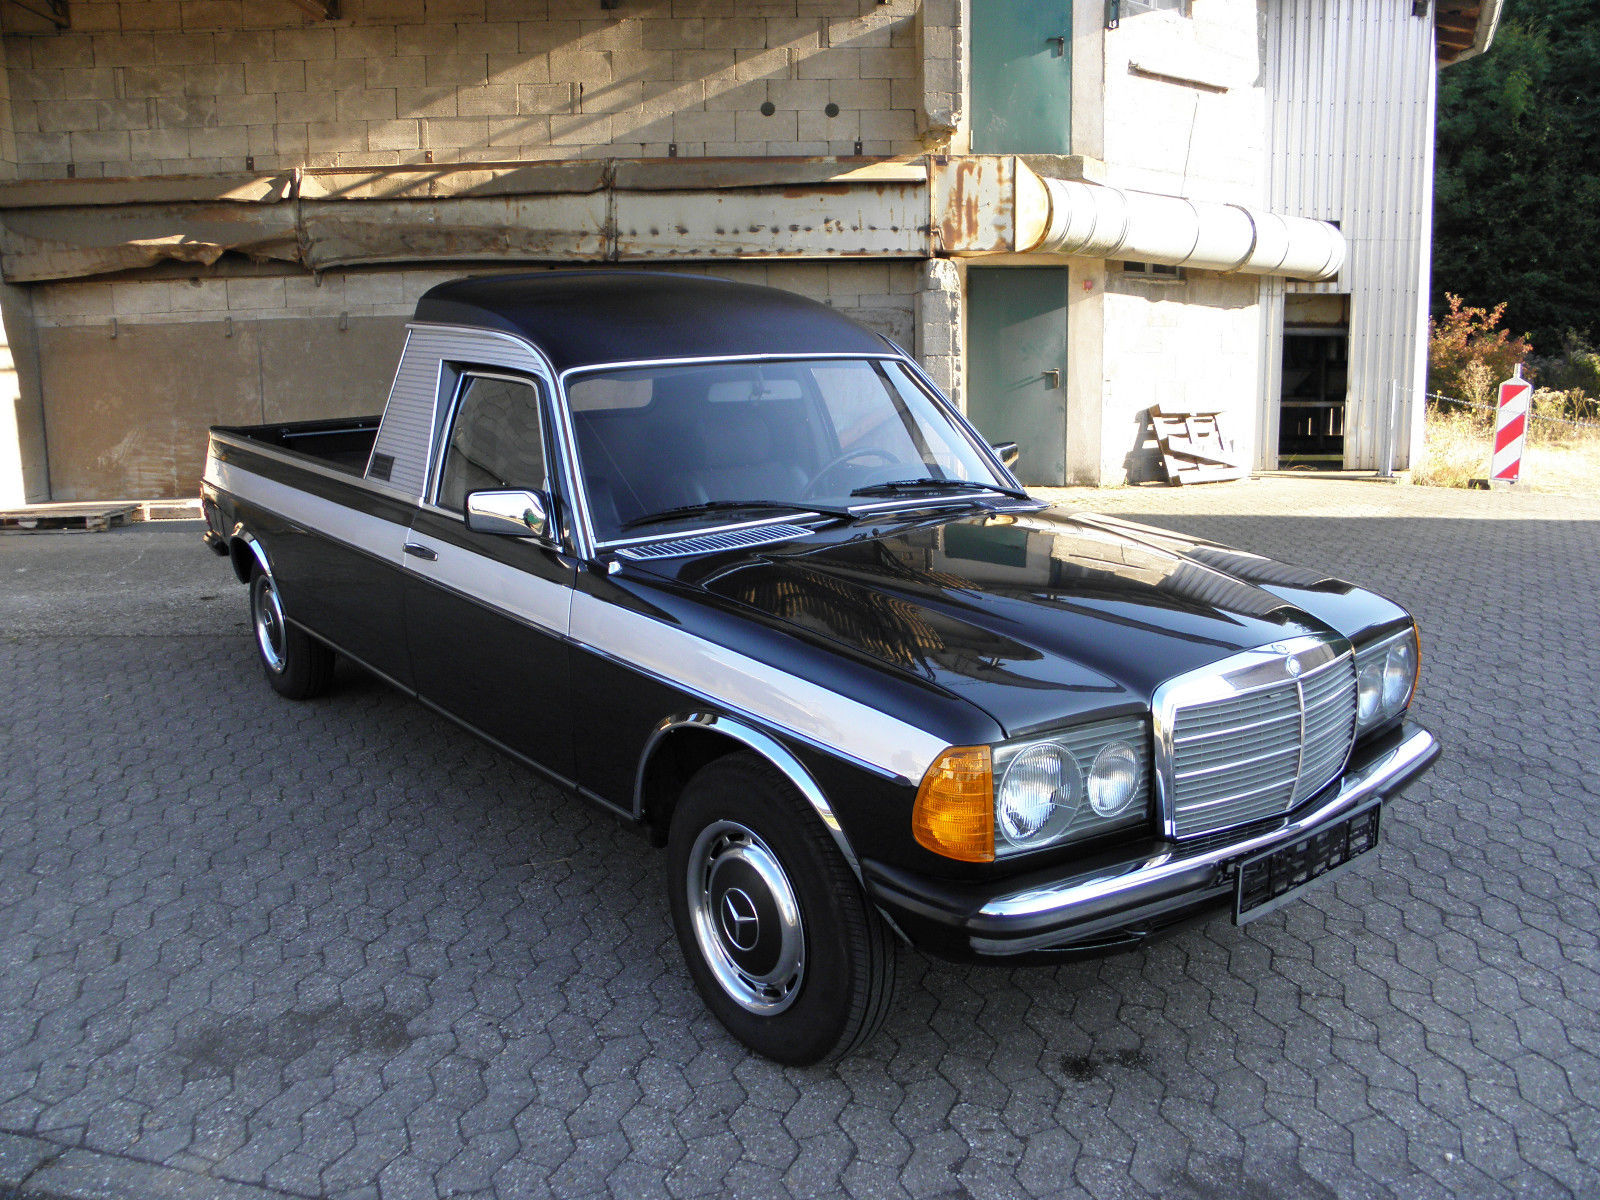 1982 mercedes benz w123 pickup benztuning. Black Bedroom Furniture Sets. Home Design Ideas